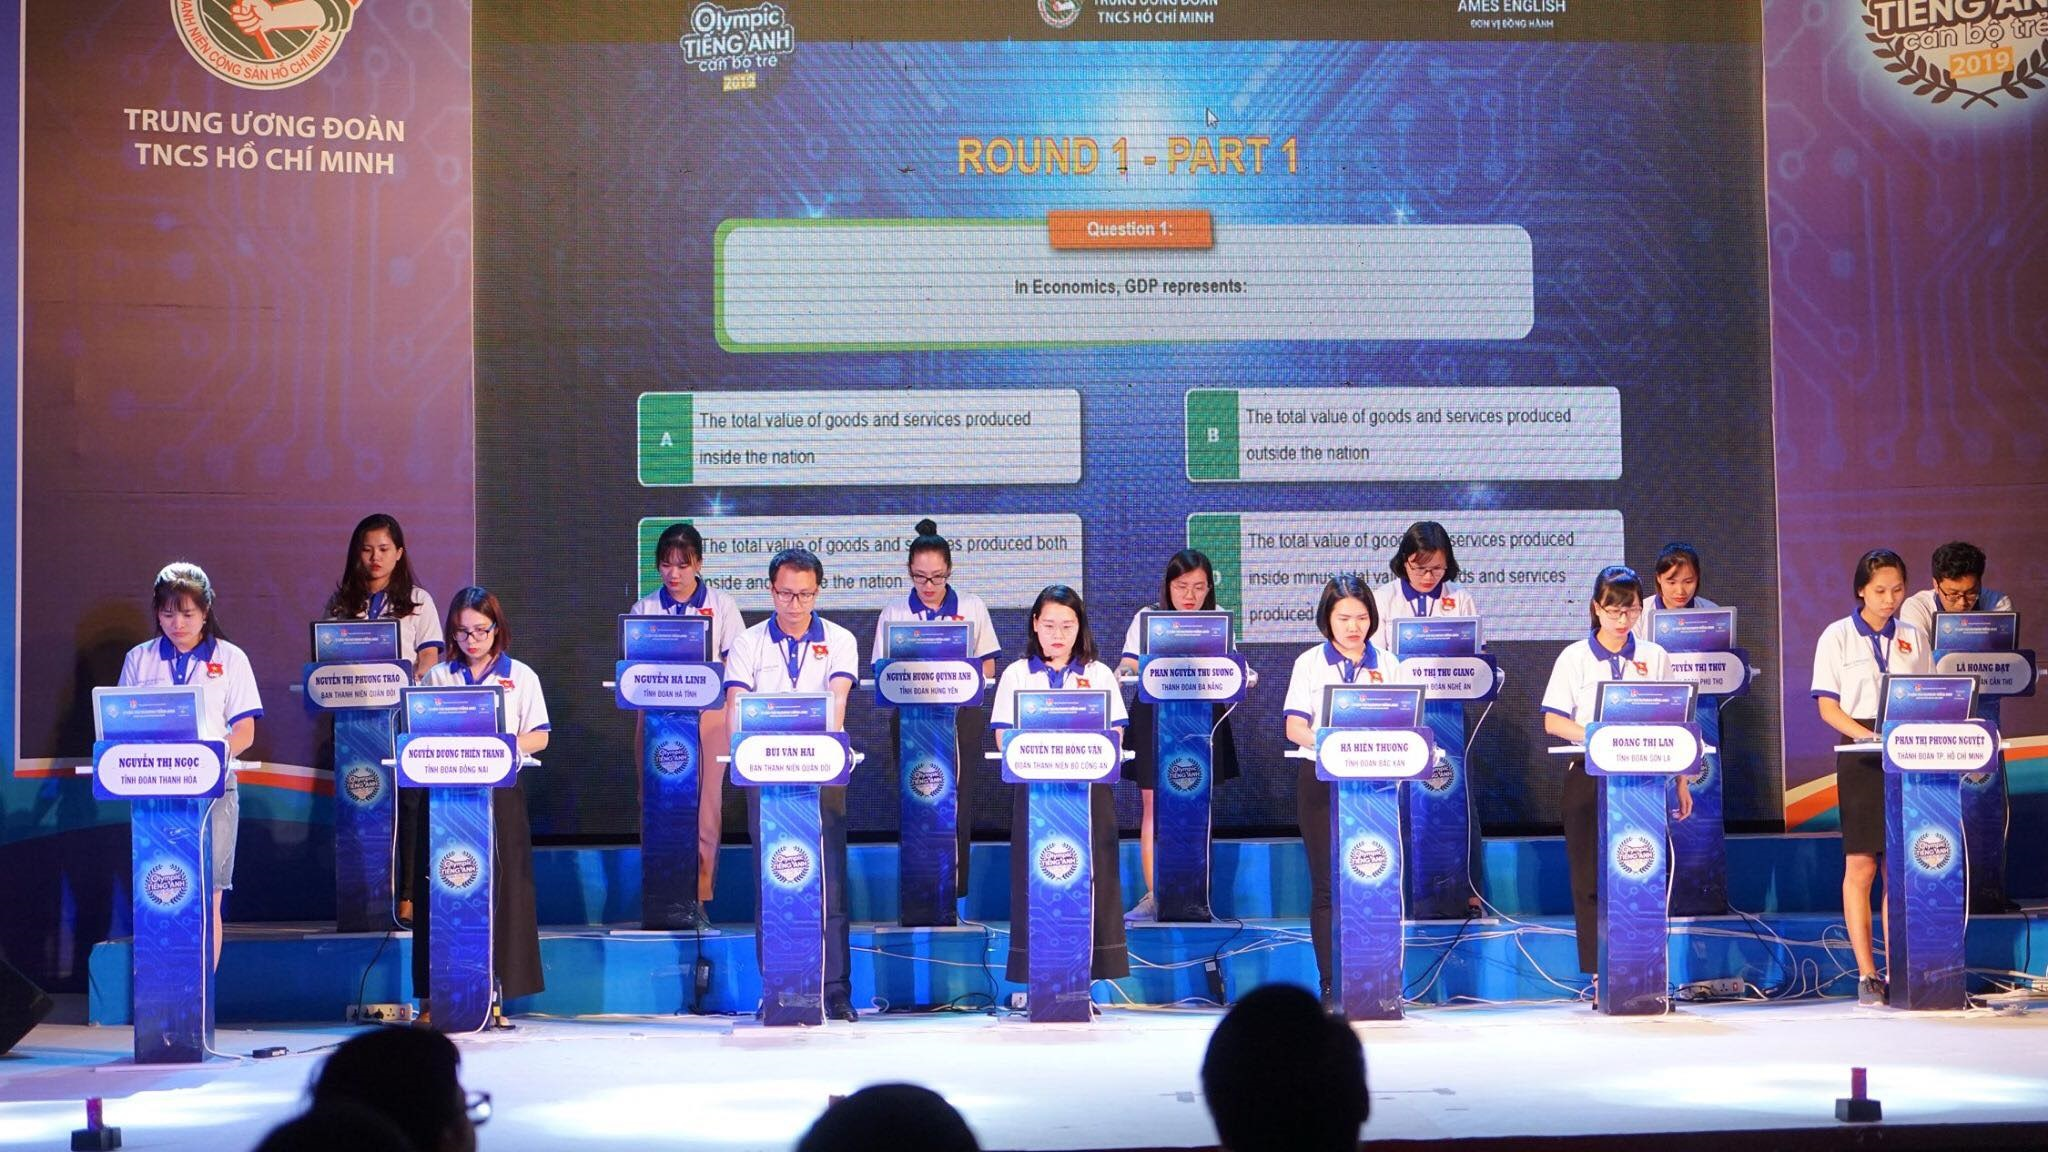 Contestants participated in the final round of the Contest